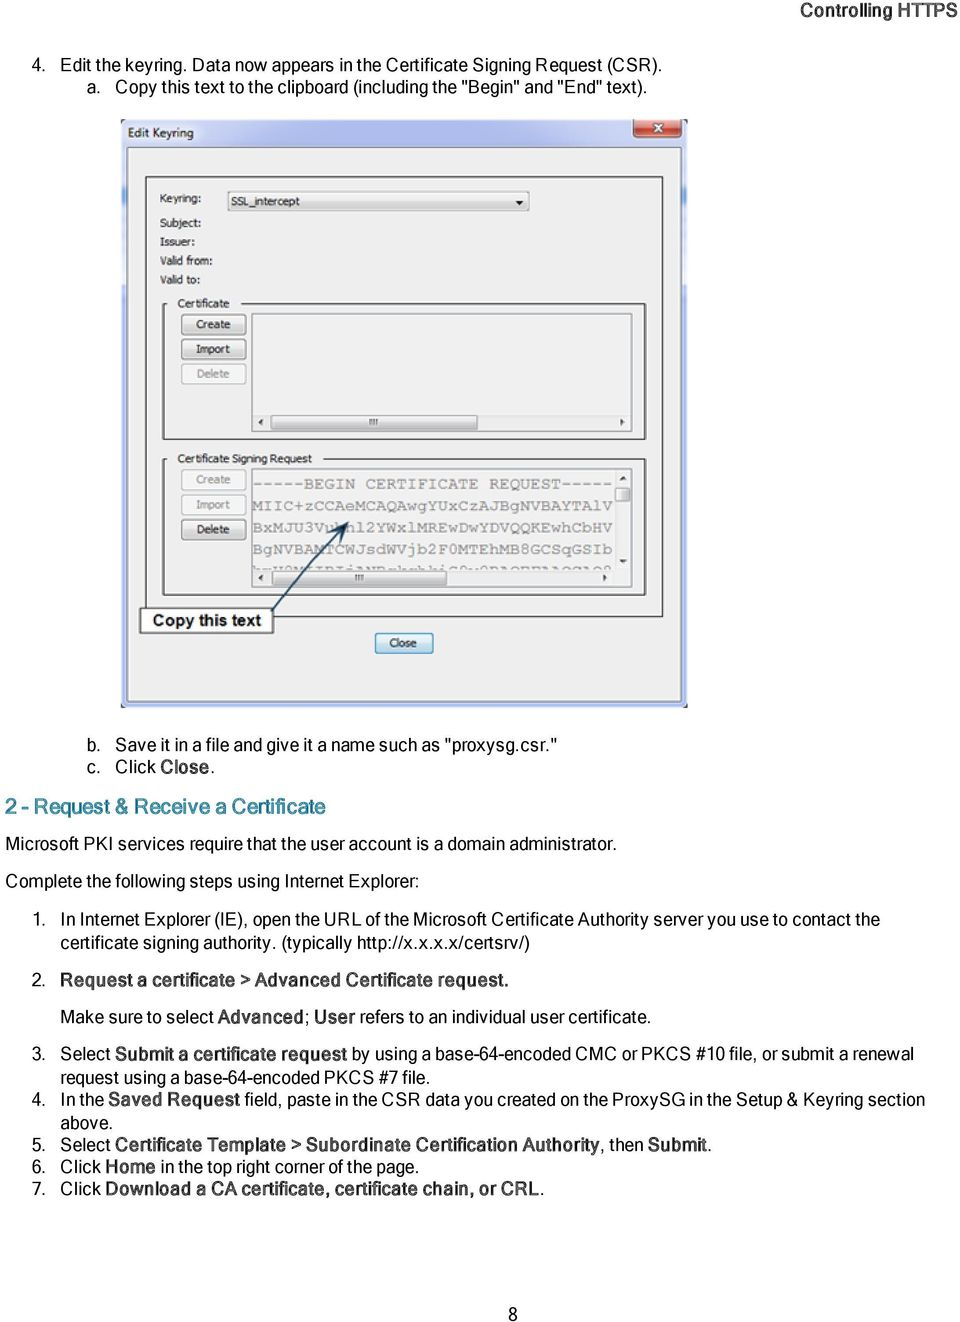 Blue Coat Security First Steps Solution for Controlling HTTPS - PDF